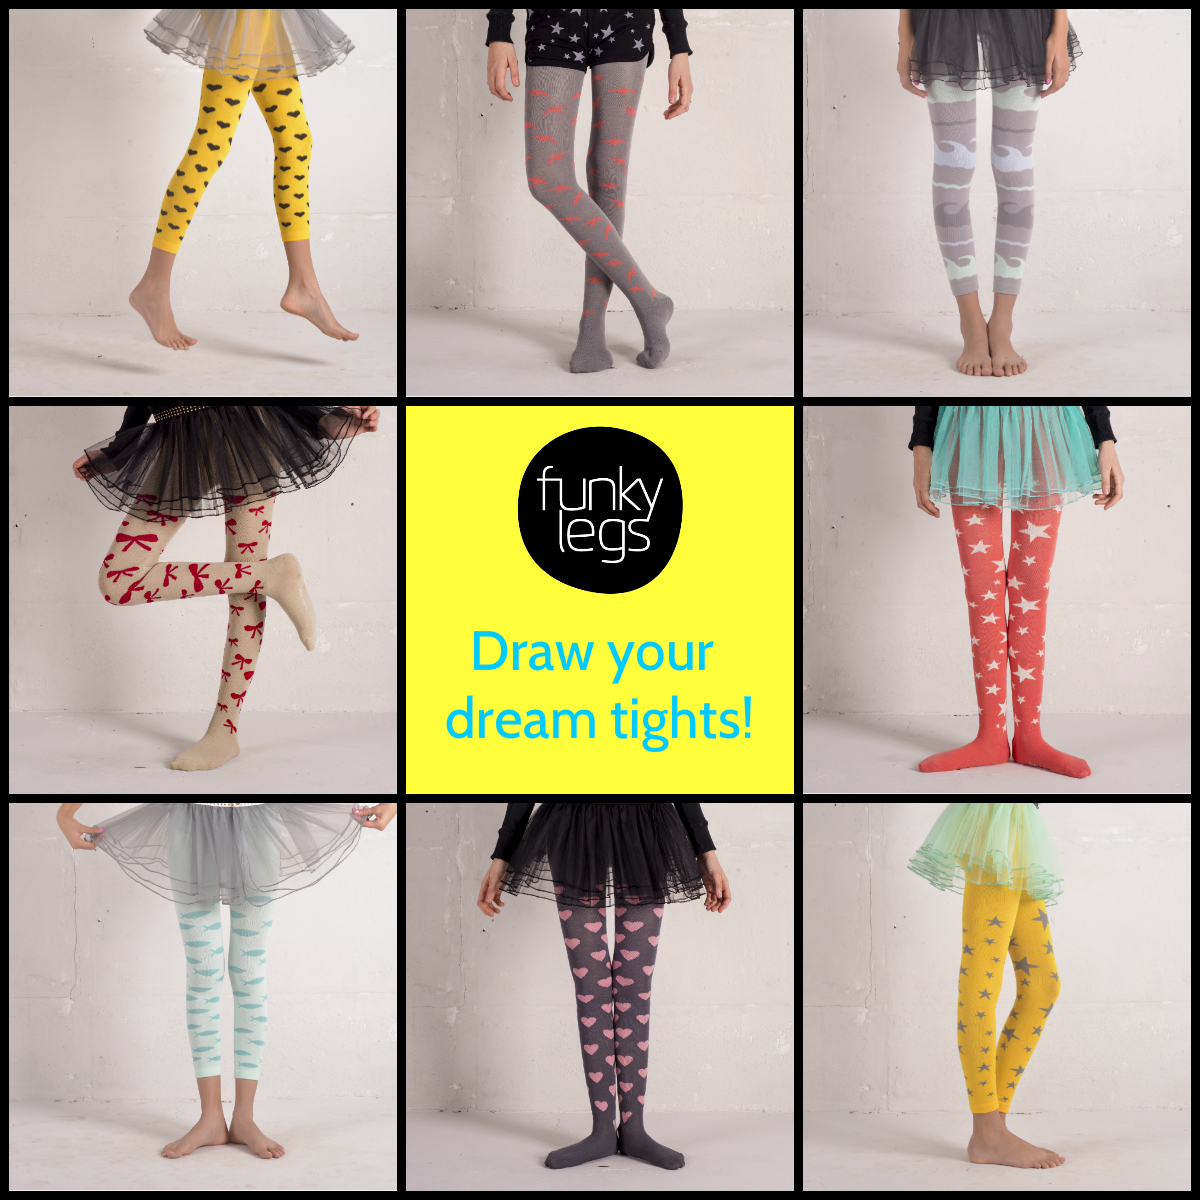 Funky legs draw your dream tights